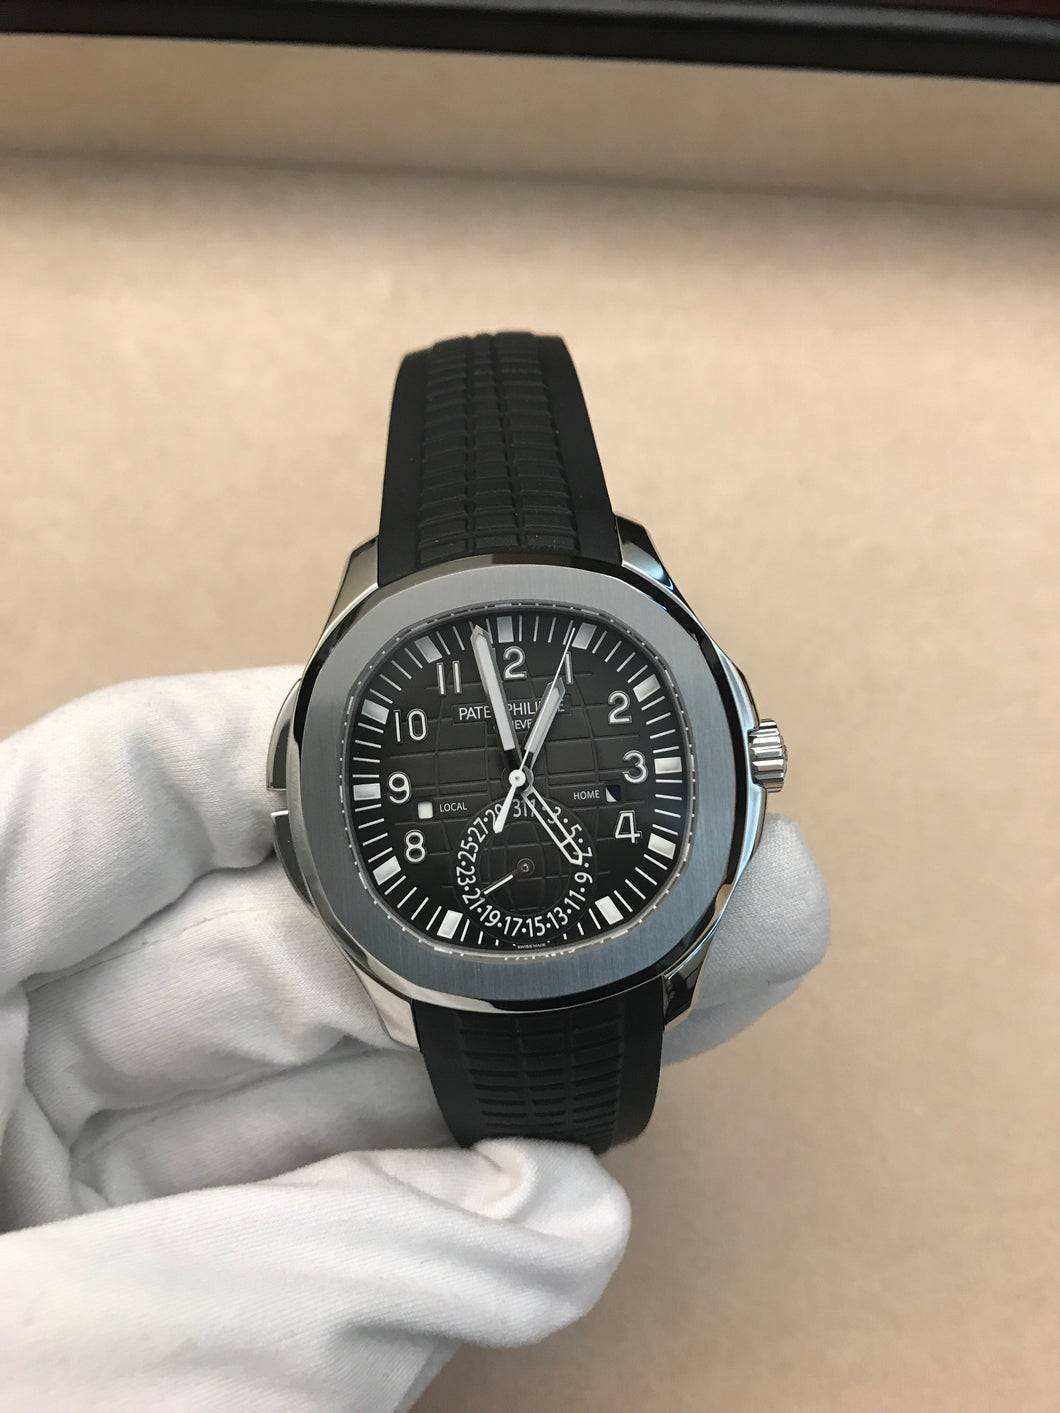 Patek Philippe Aquanaut Travel Time Steel White Glove Watch Company